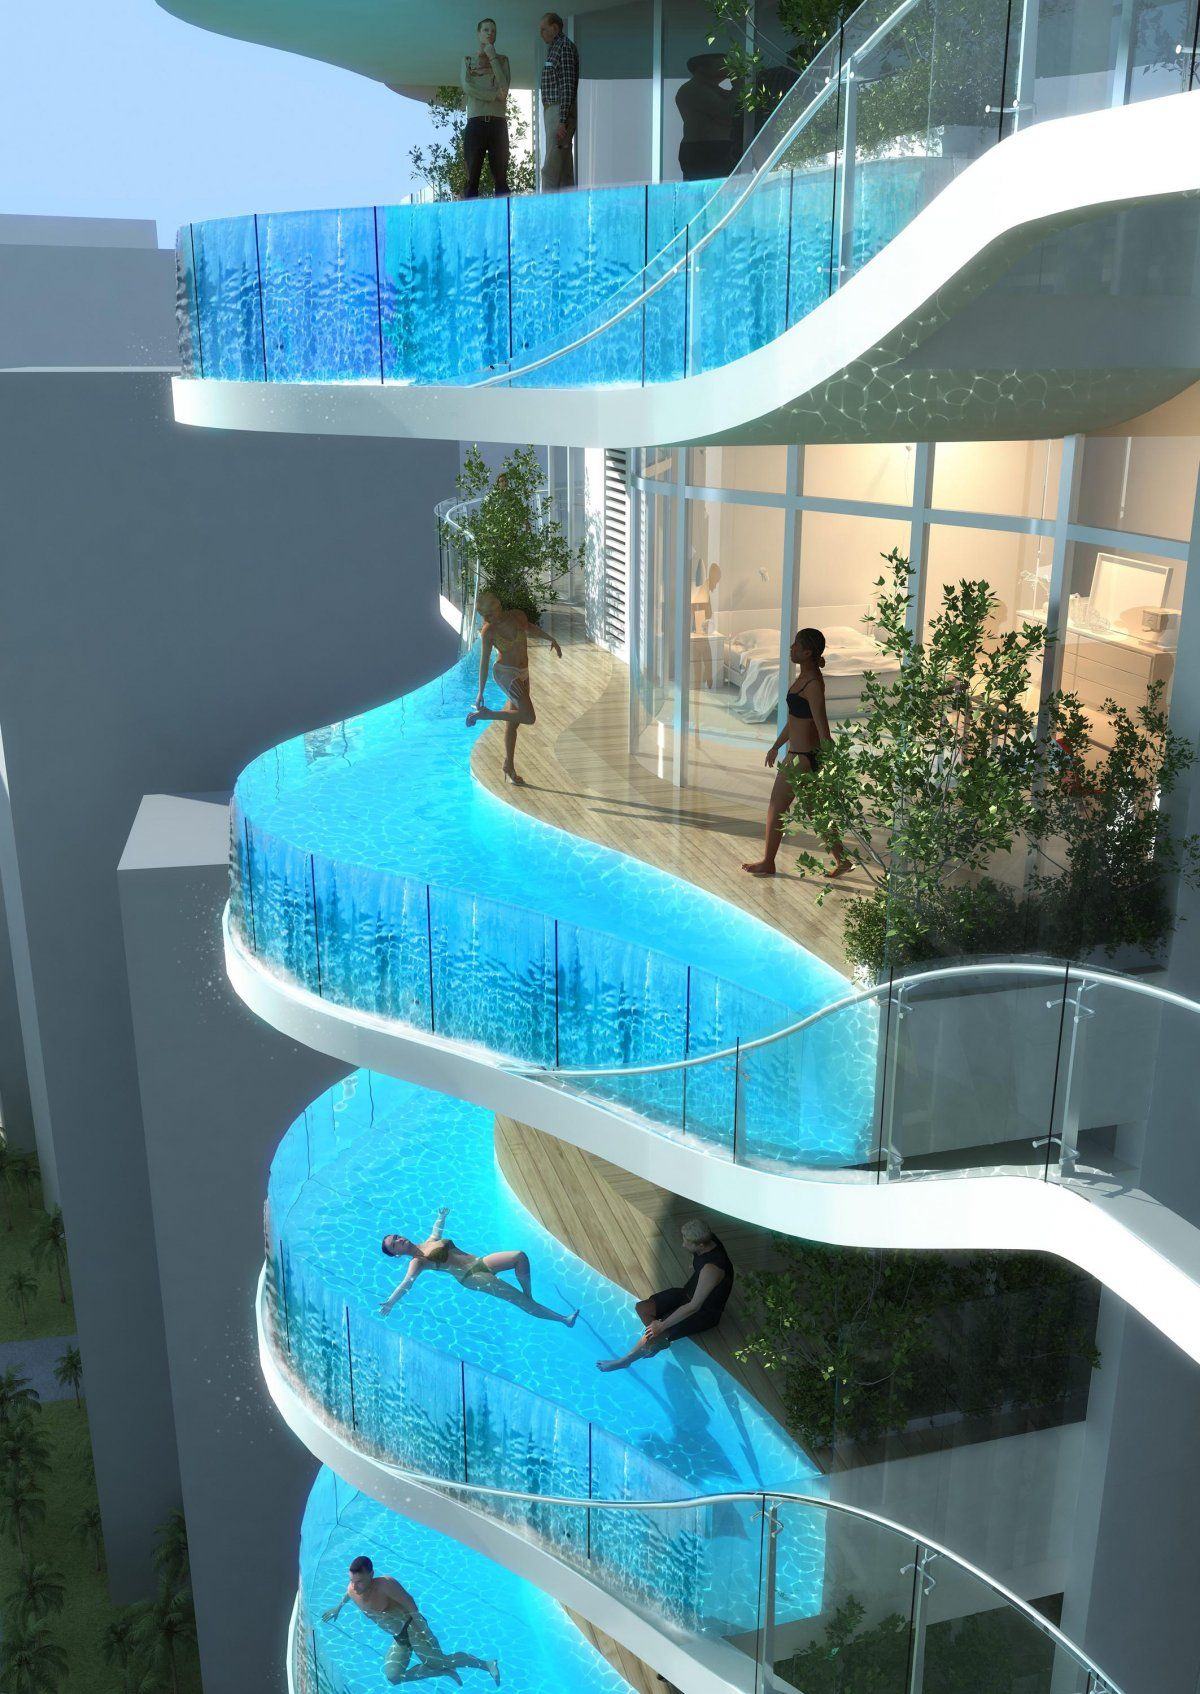 whoa, these luxury condos have a private pool on every balcony